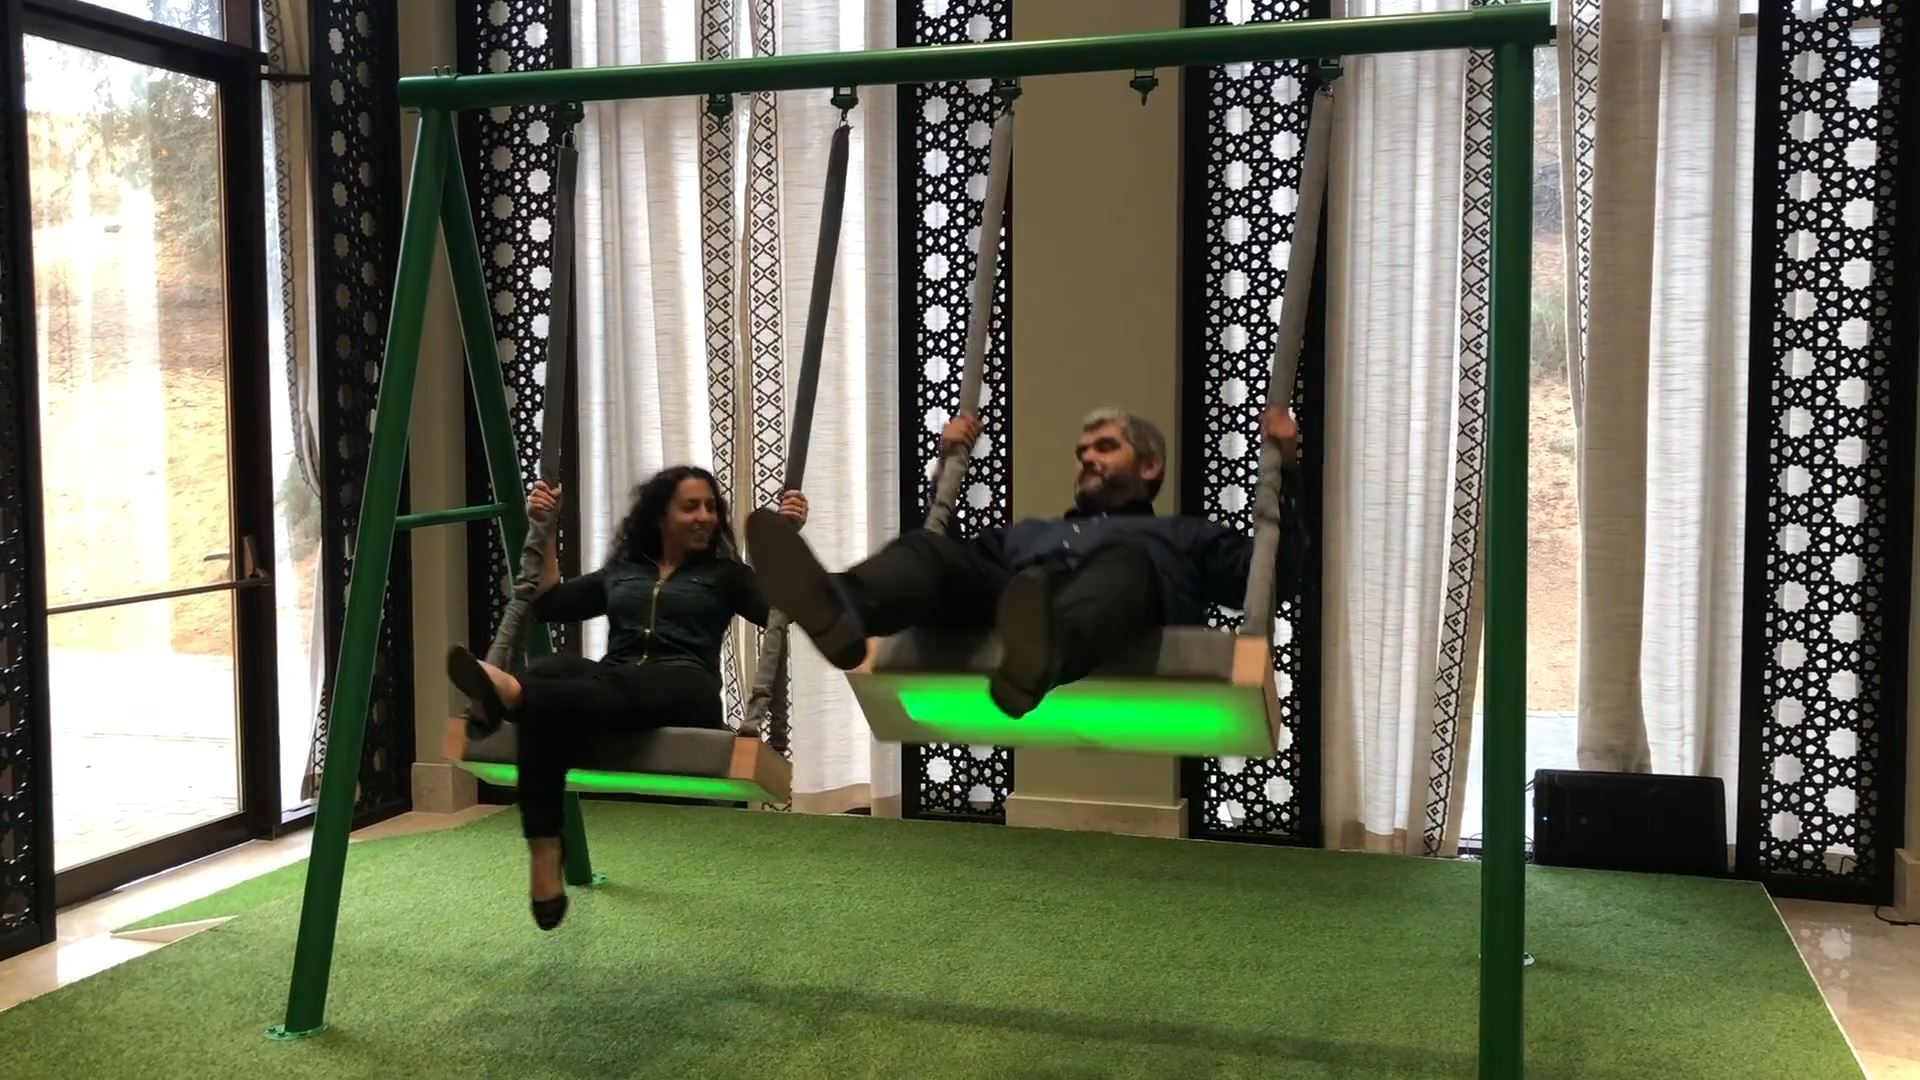 sharjah e-Government retreat interactive technology integration musical swings